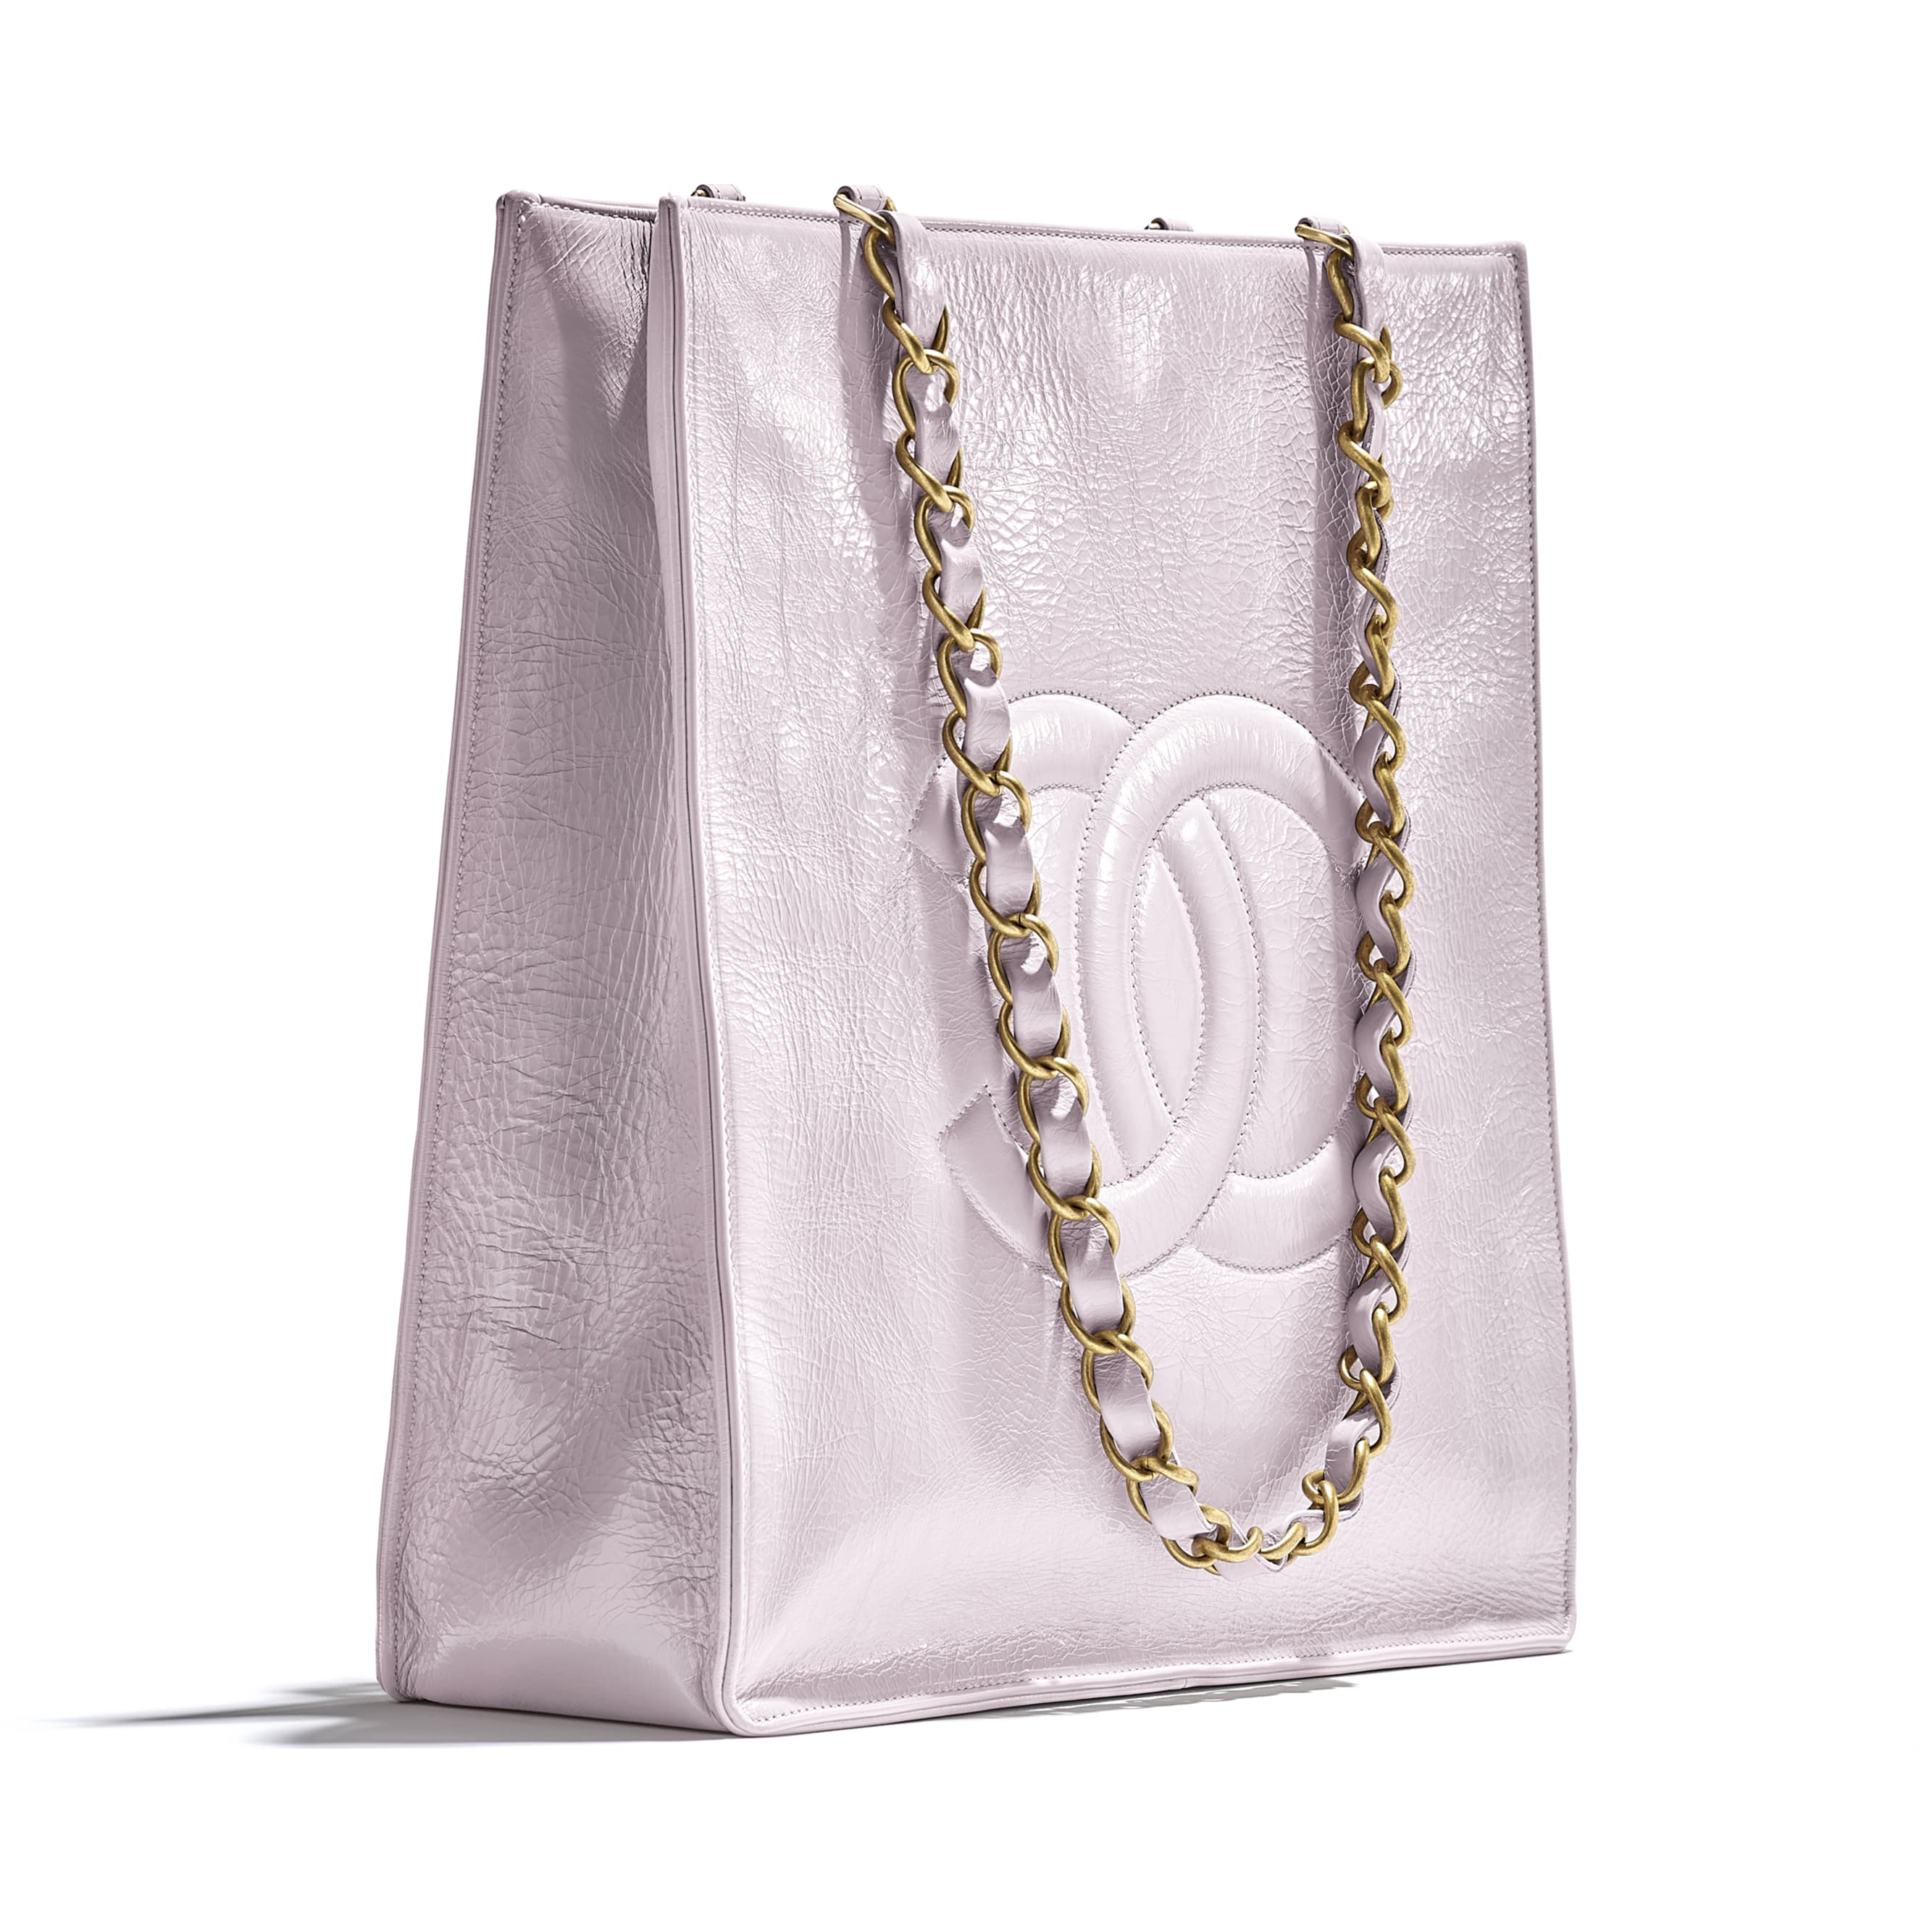 Shopping Bag - Lilac - Shiny Aged Calfskin & Gold-Tone Metal - CHANEL - Extra view - see standard sized version